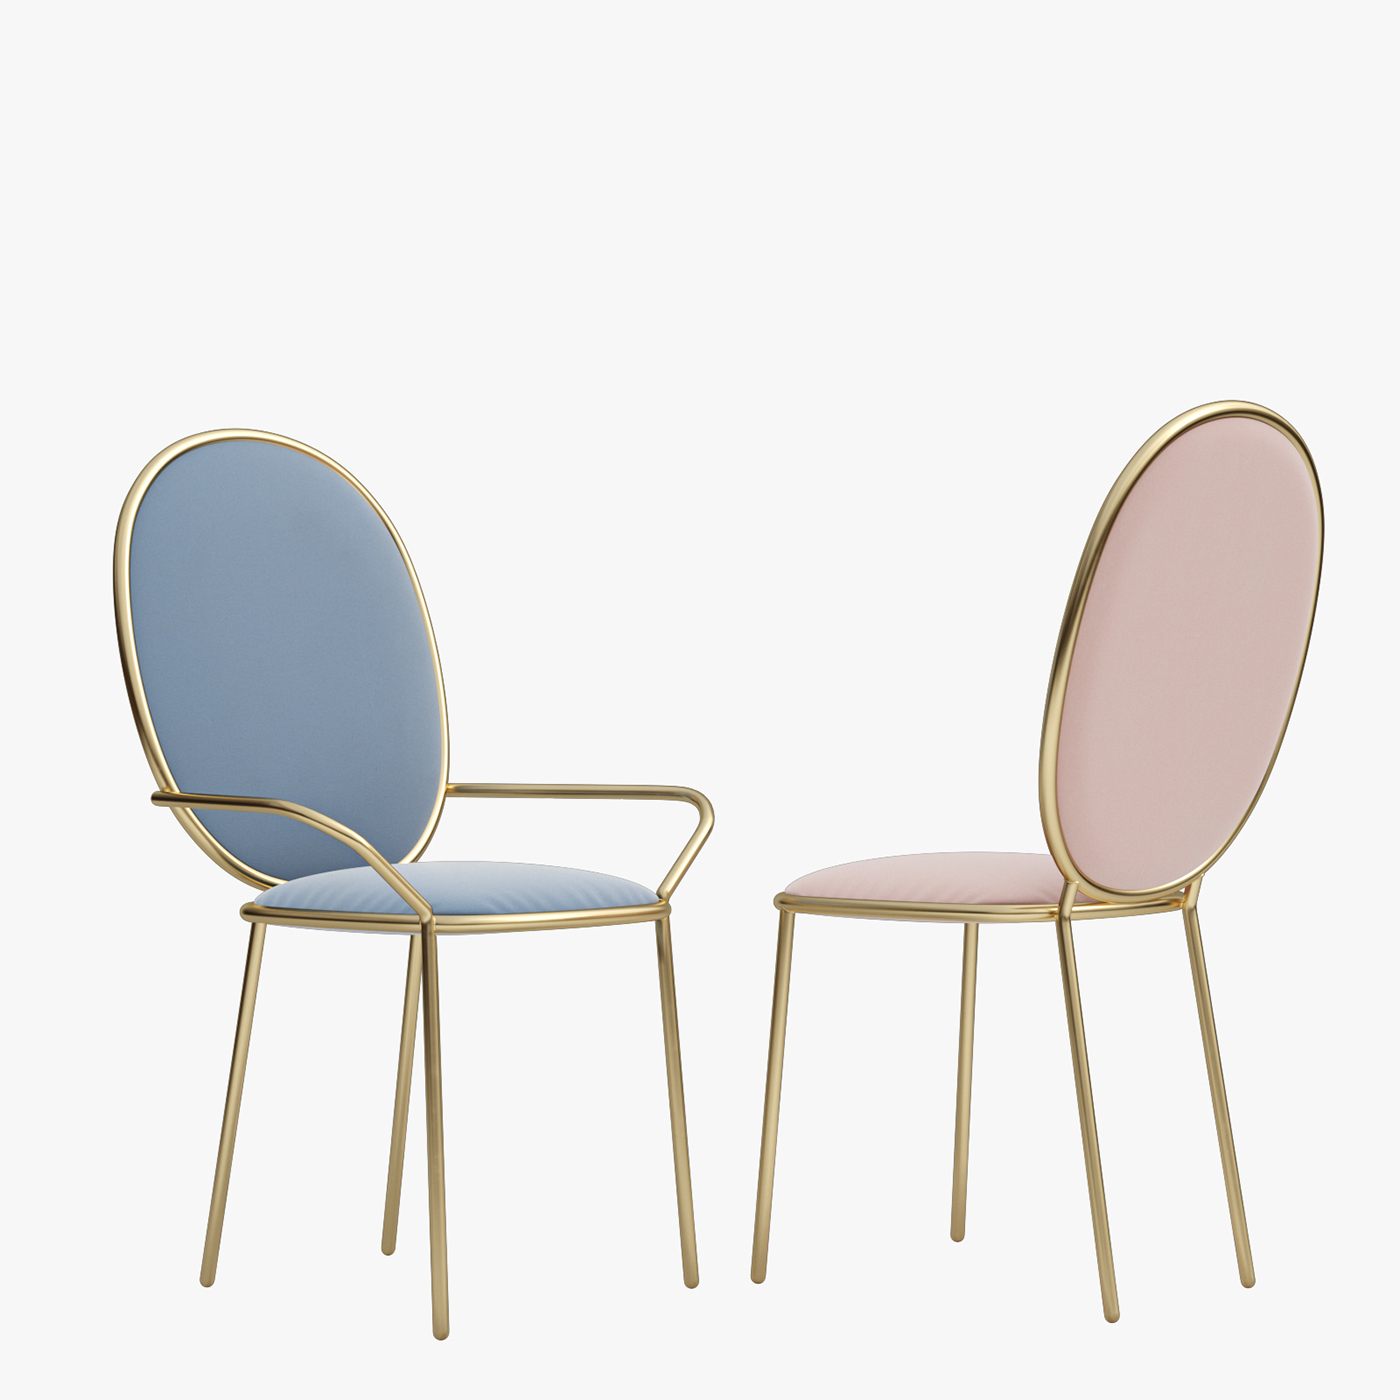 Stay Dining Chair On Behance